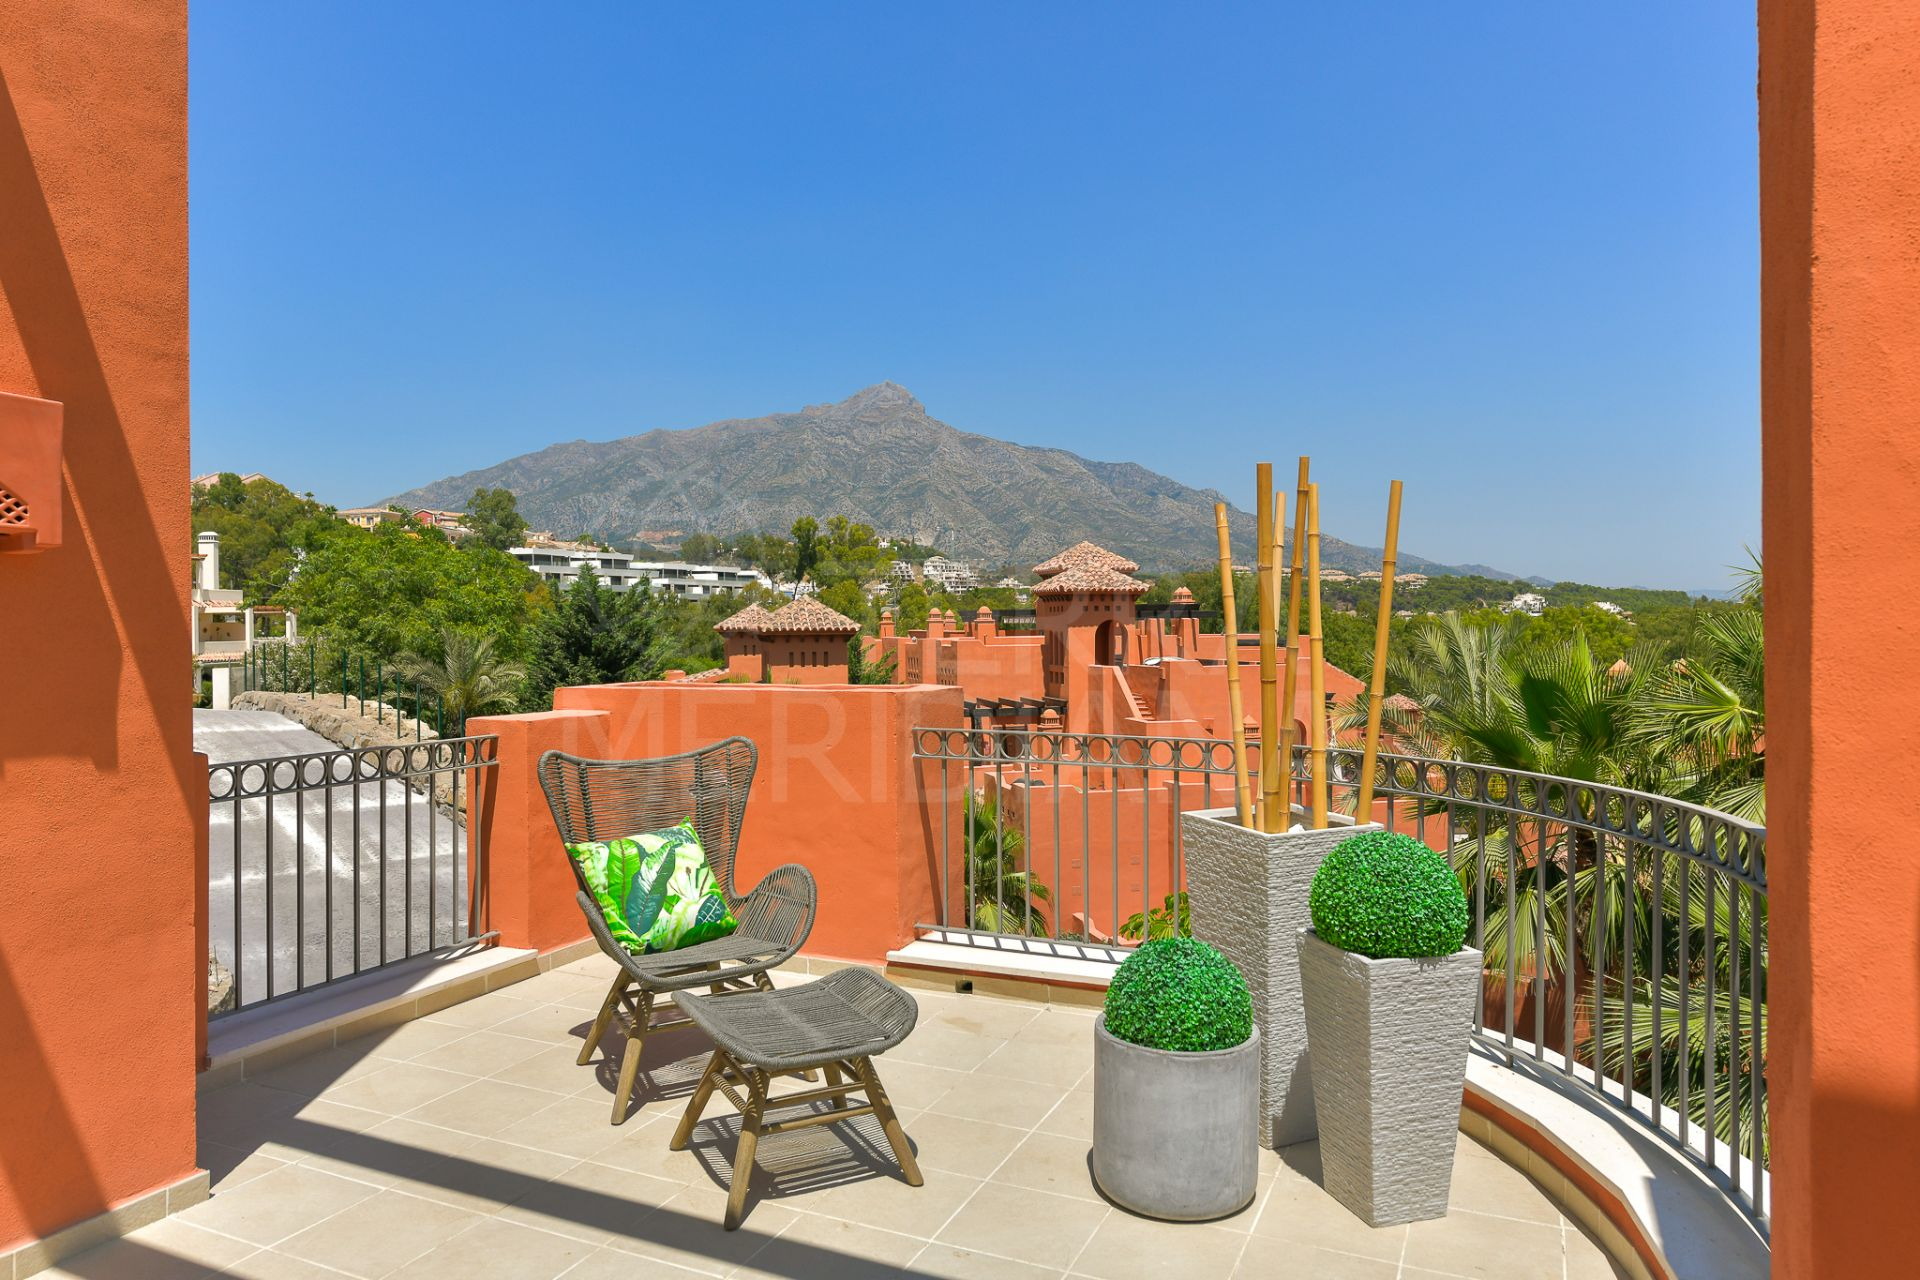 Ground floor 2 bedroom apartment with garden for sale in Alminar de Marbella, Nueva Andalucia